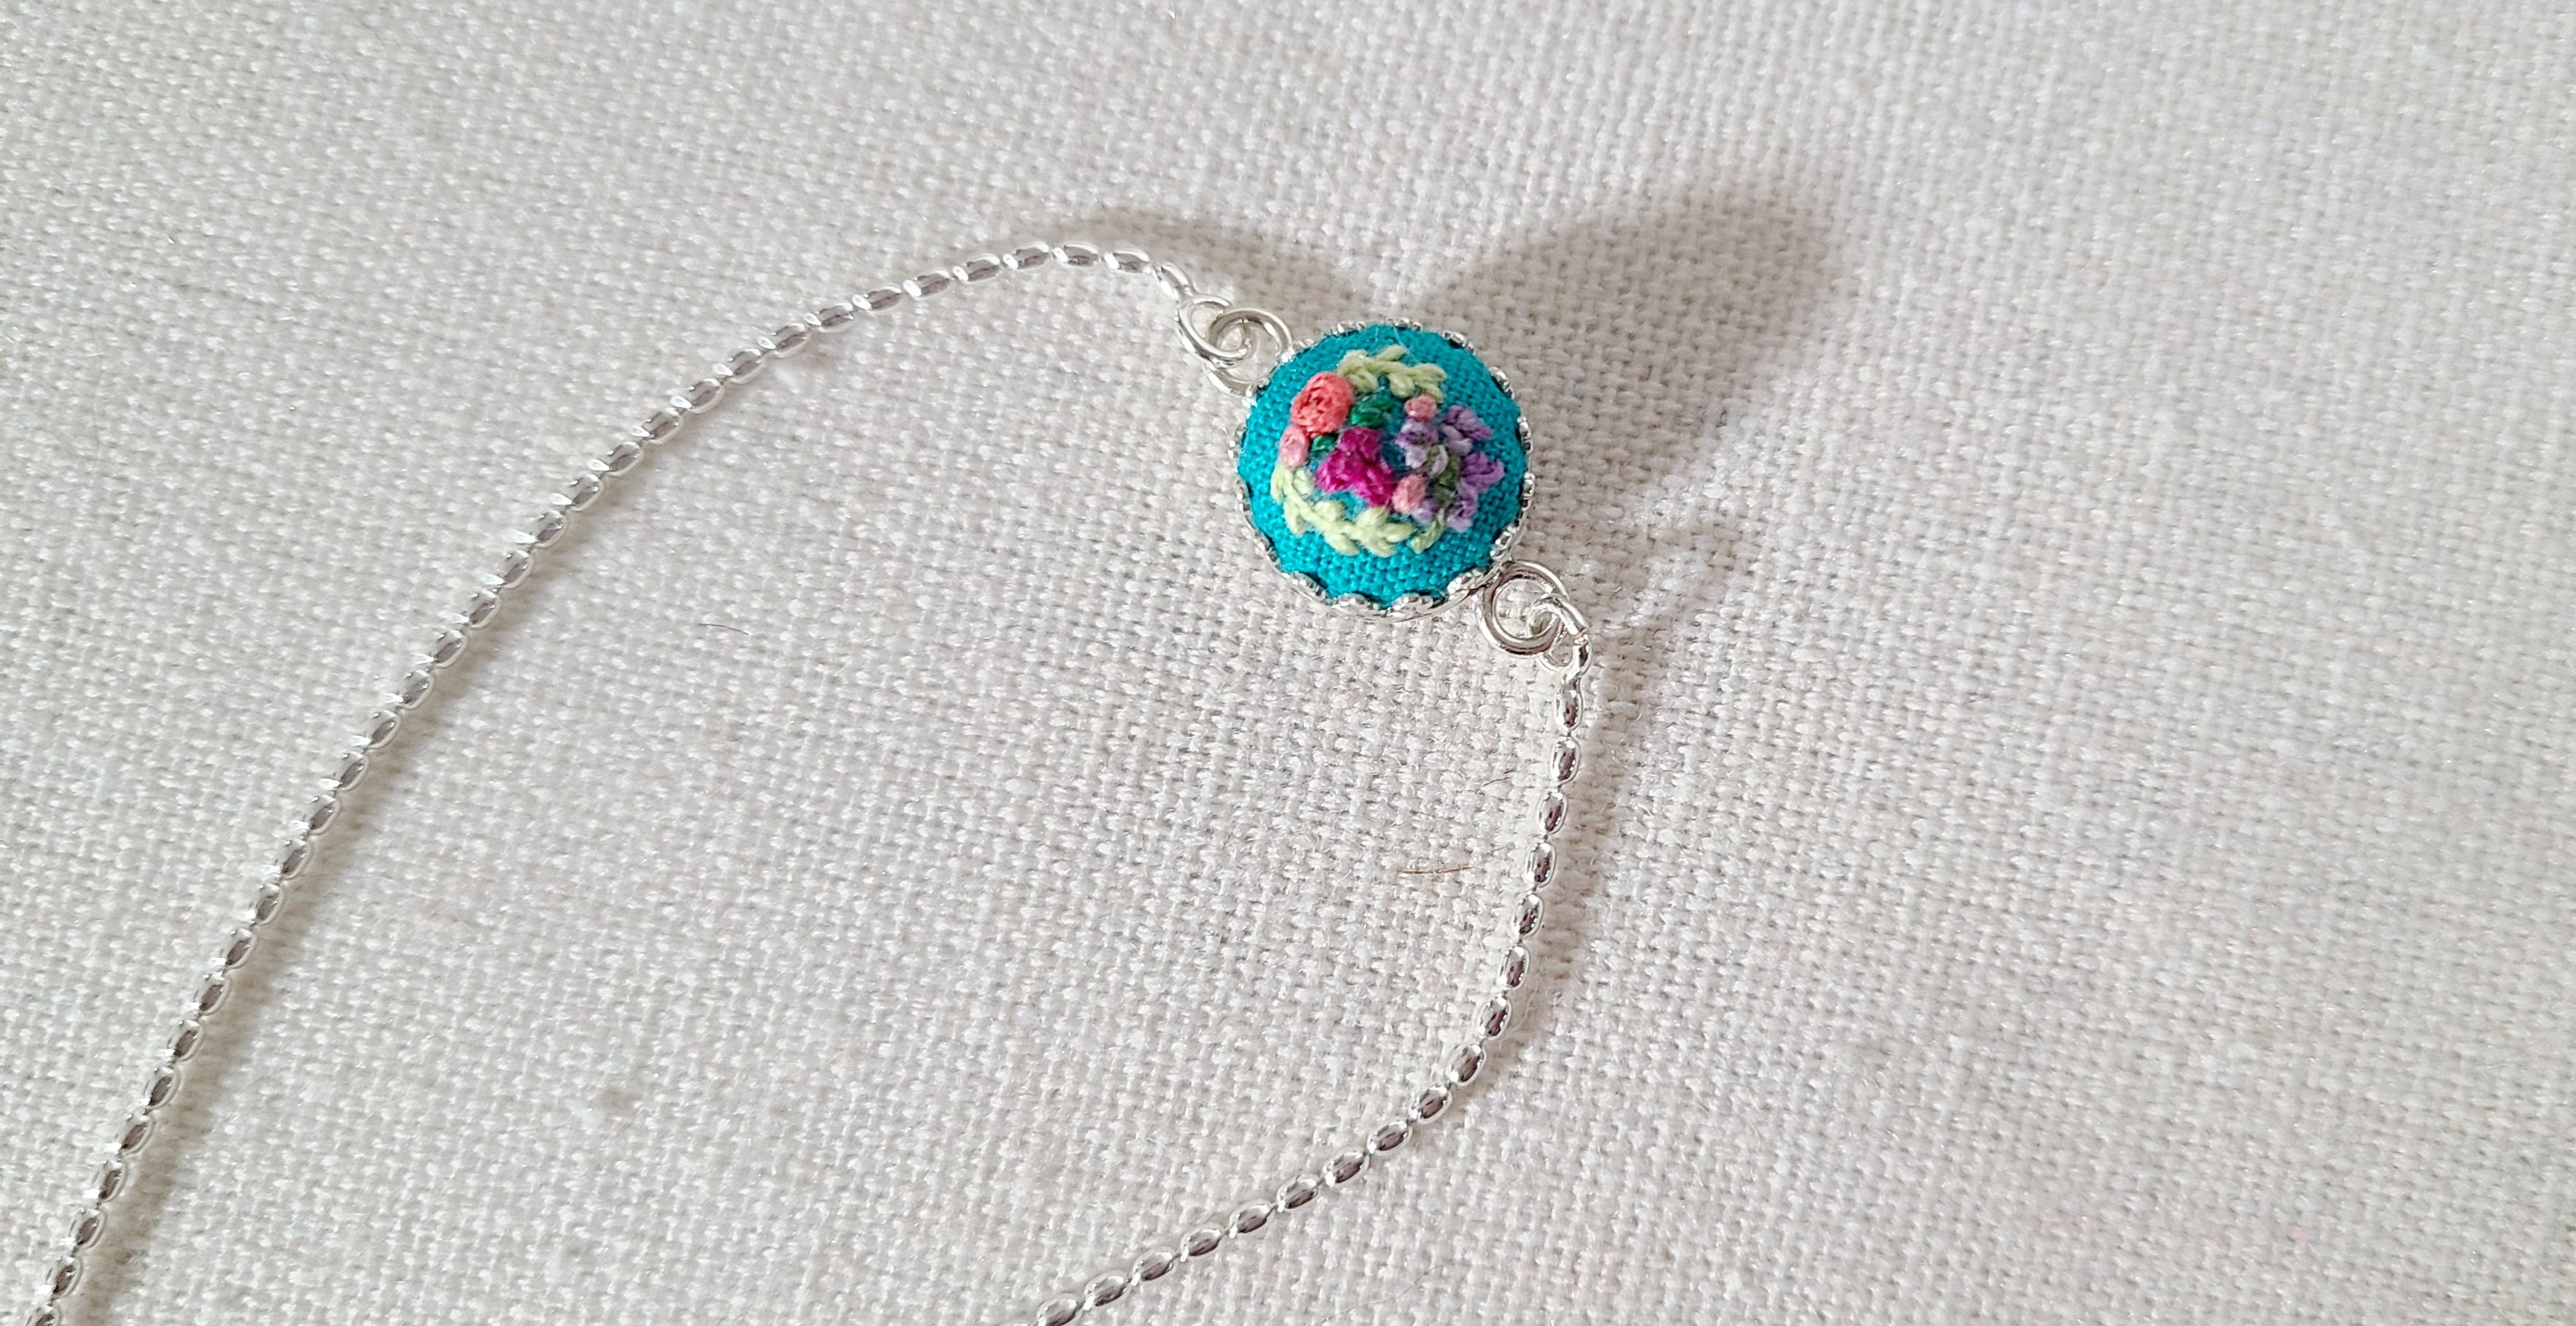 Roses and Pansies Wreath of Turquoise Hand Embroidered Sterling Silver Bracelet